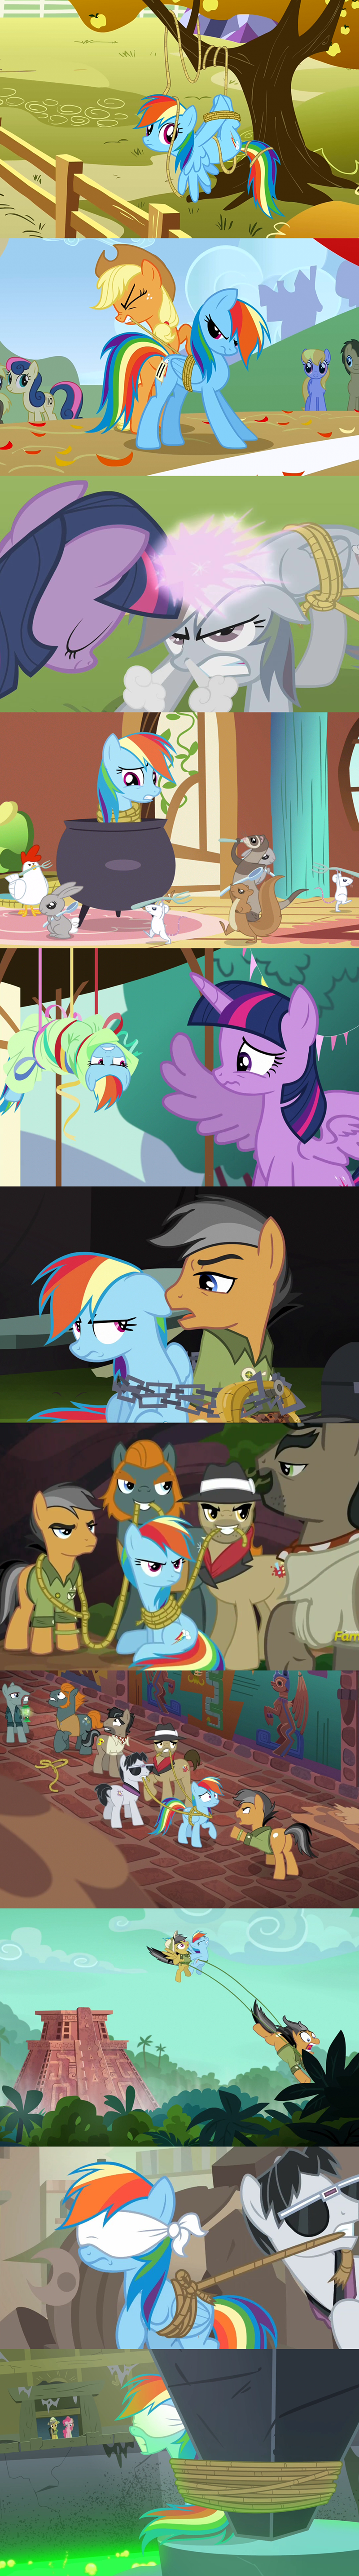 screencap rainbow dash magical mystery cure fall weather friends party pooped stranger than fan fiction the return of harmony daring done - 9073655296